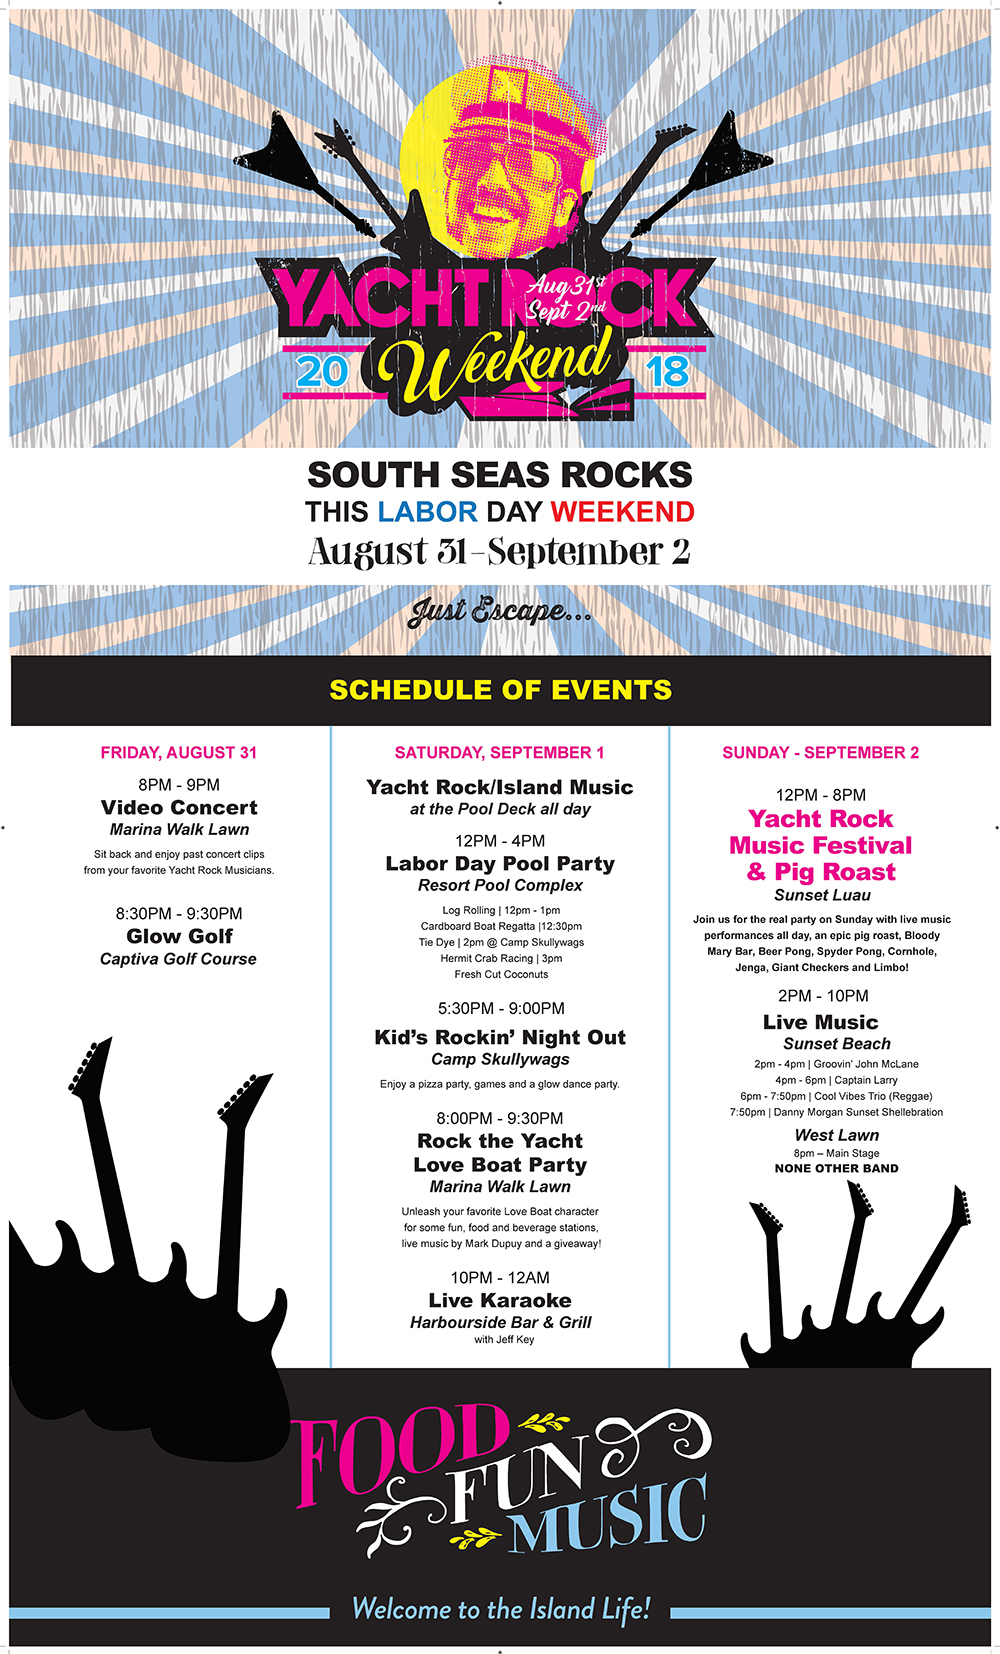 Yacht Rock Schedule of Events